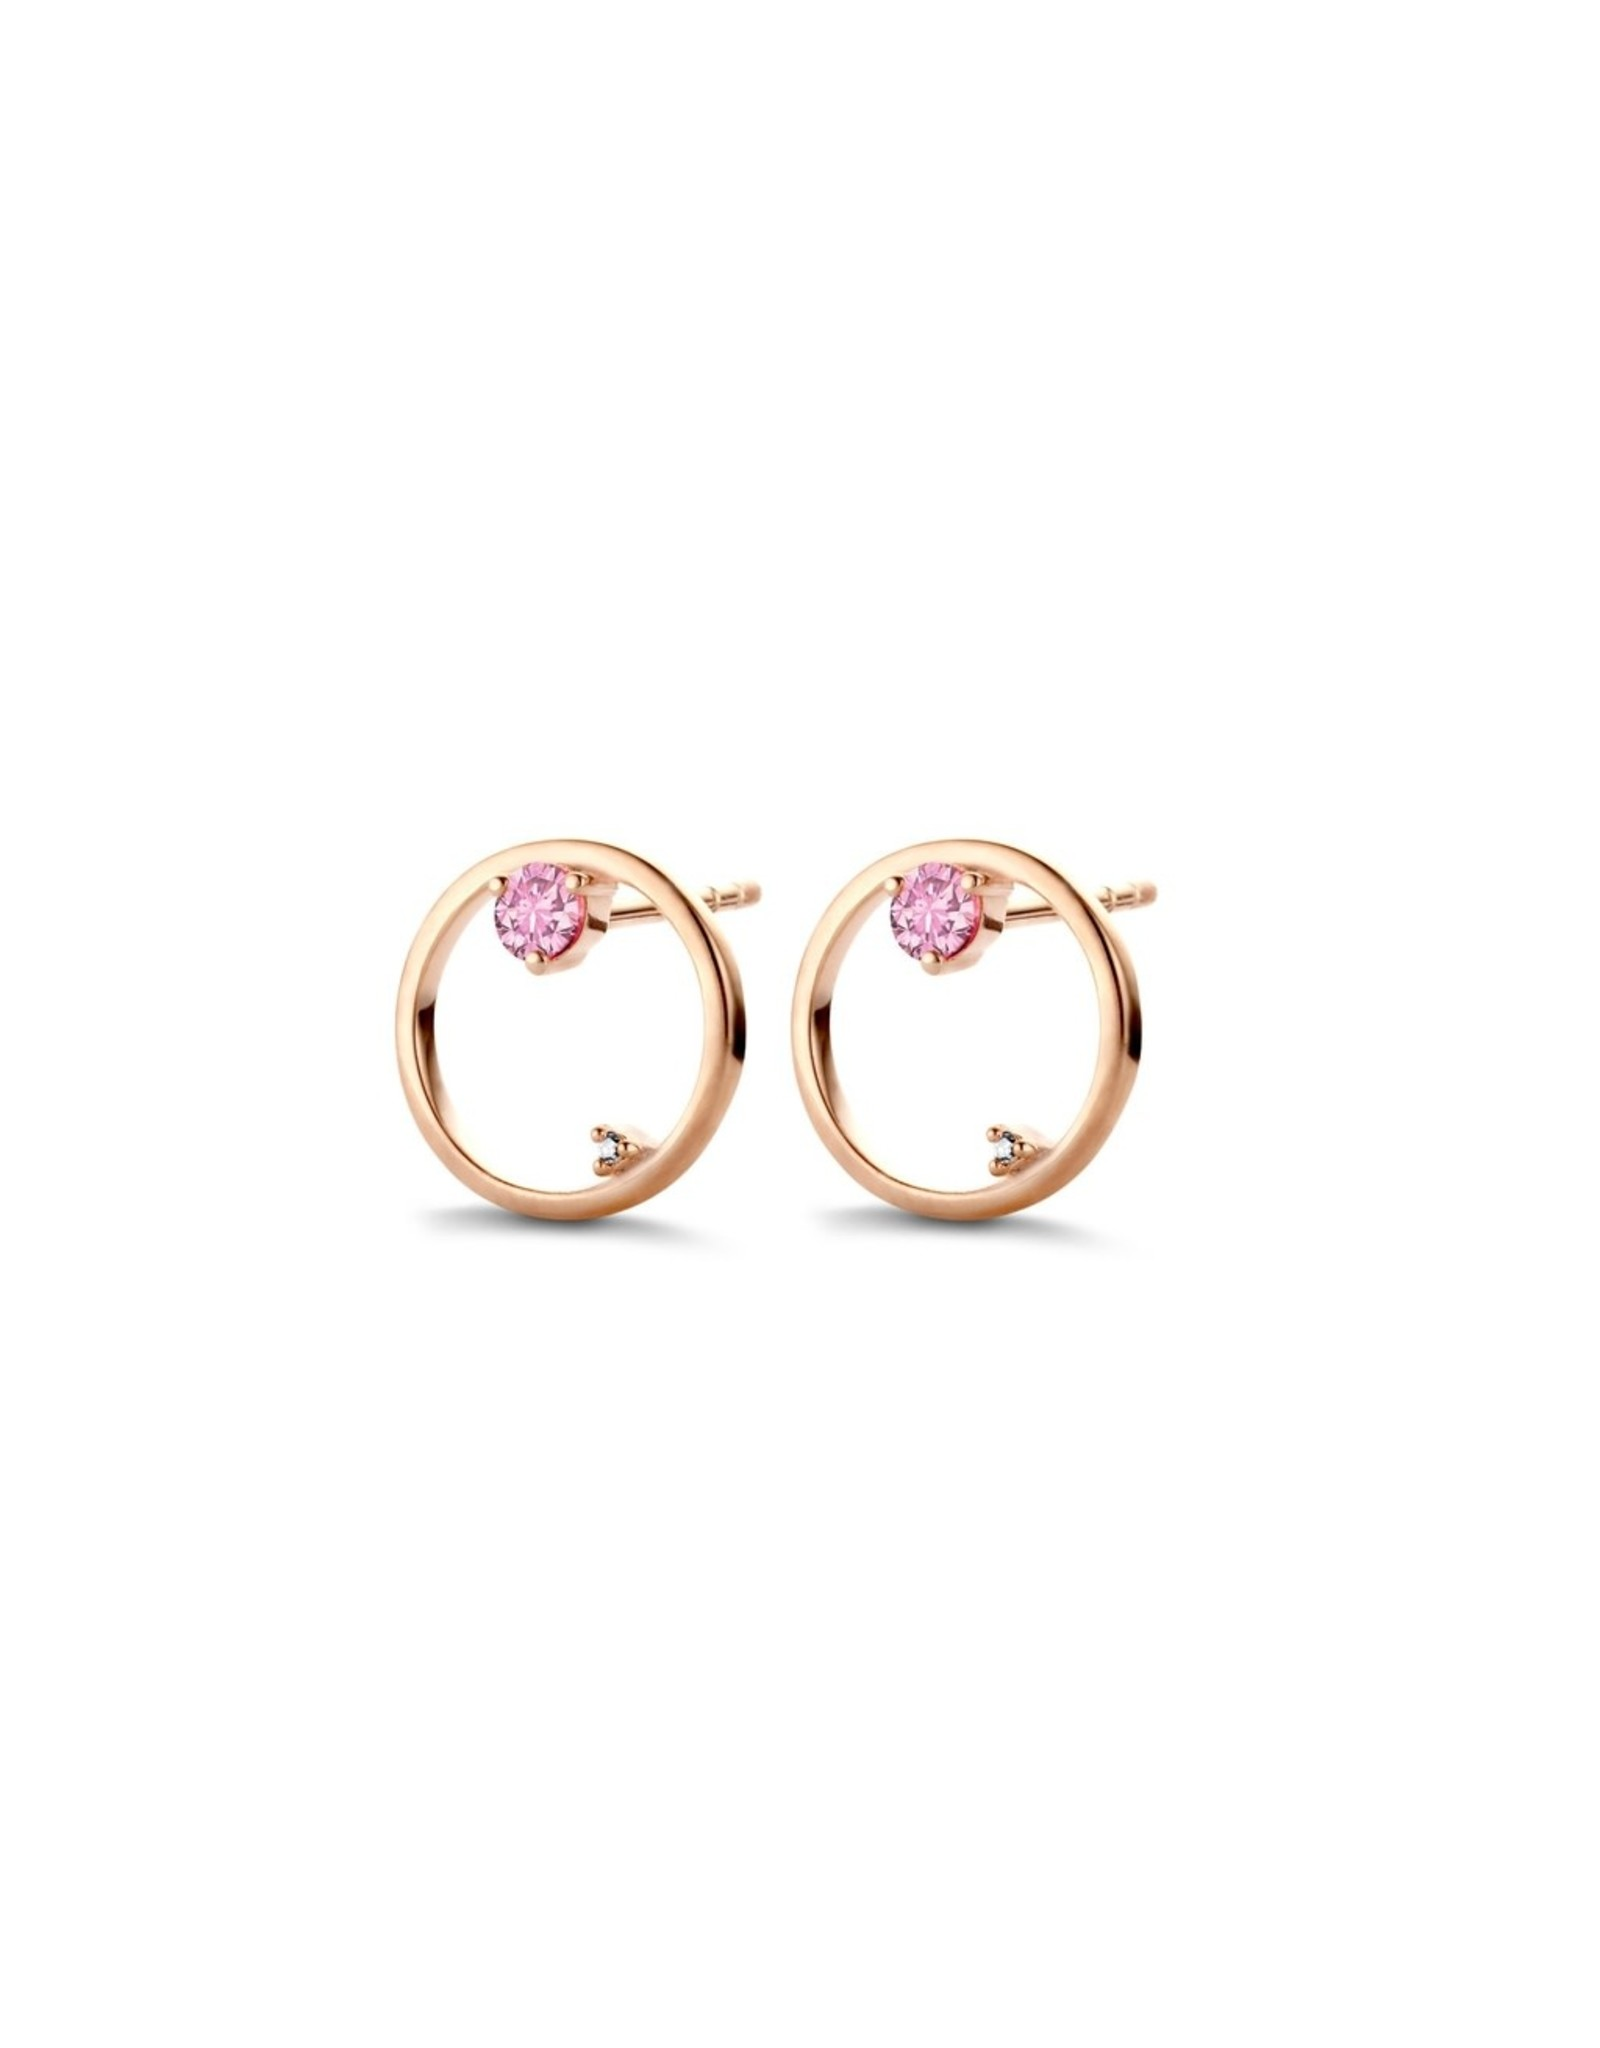 Diamanti Per Tutti Gravity Earrings - Zilver Rosé Briljant Licht Roze Saffier